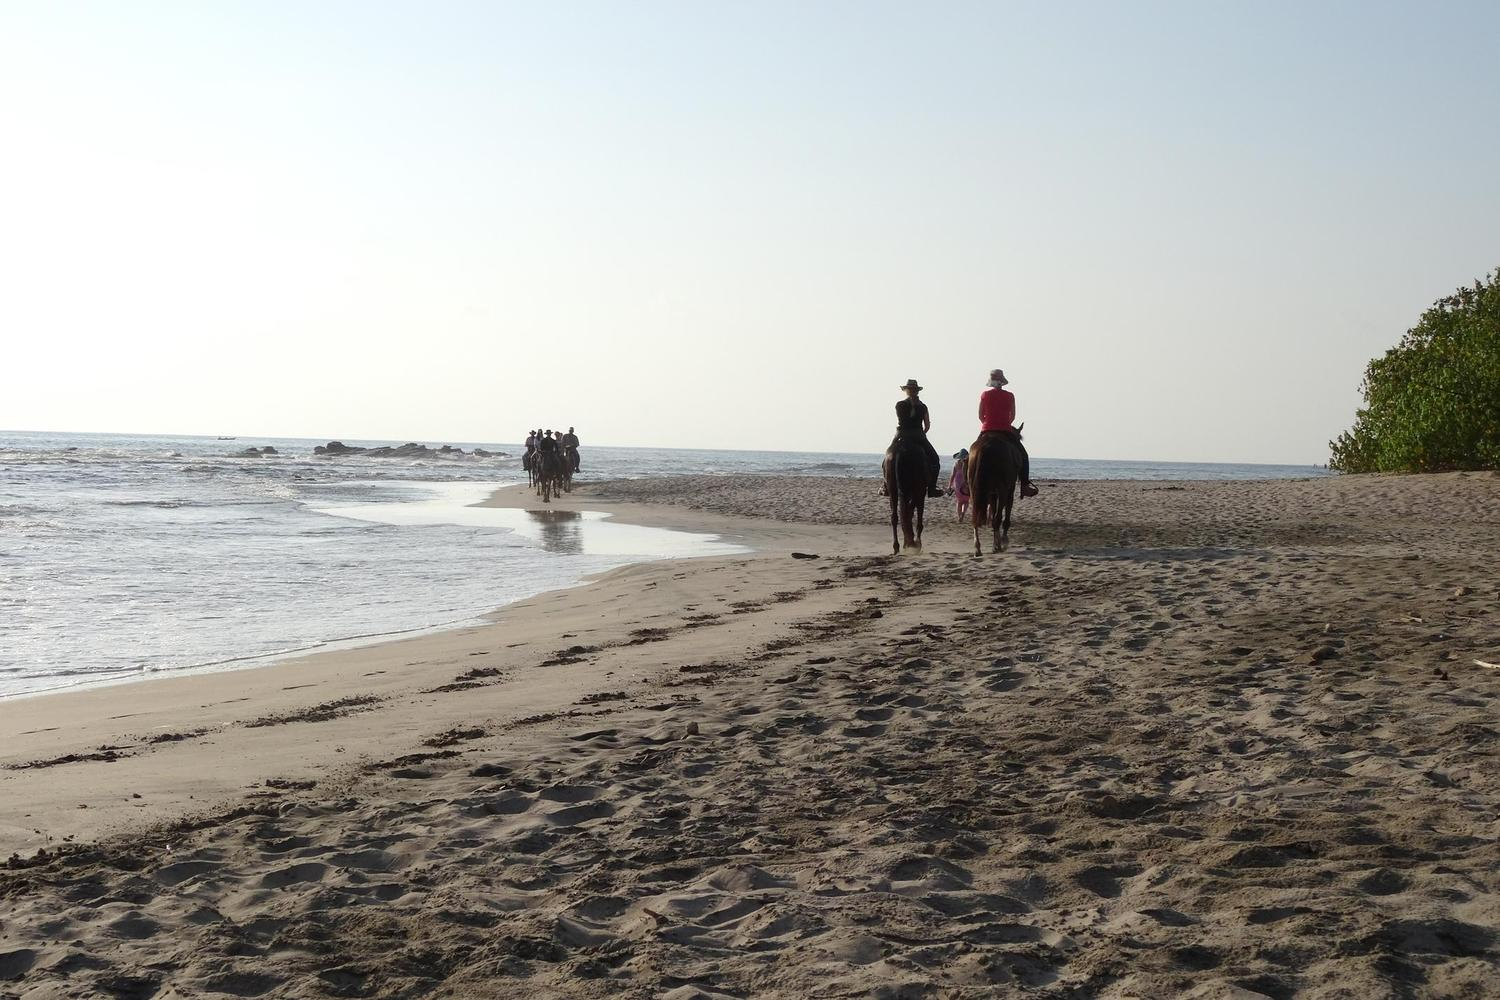 Riding horses along San Juanillo beach on the Pacific coast of Costa Rica